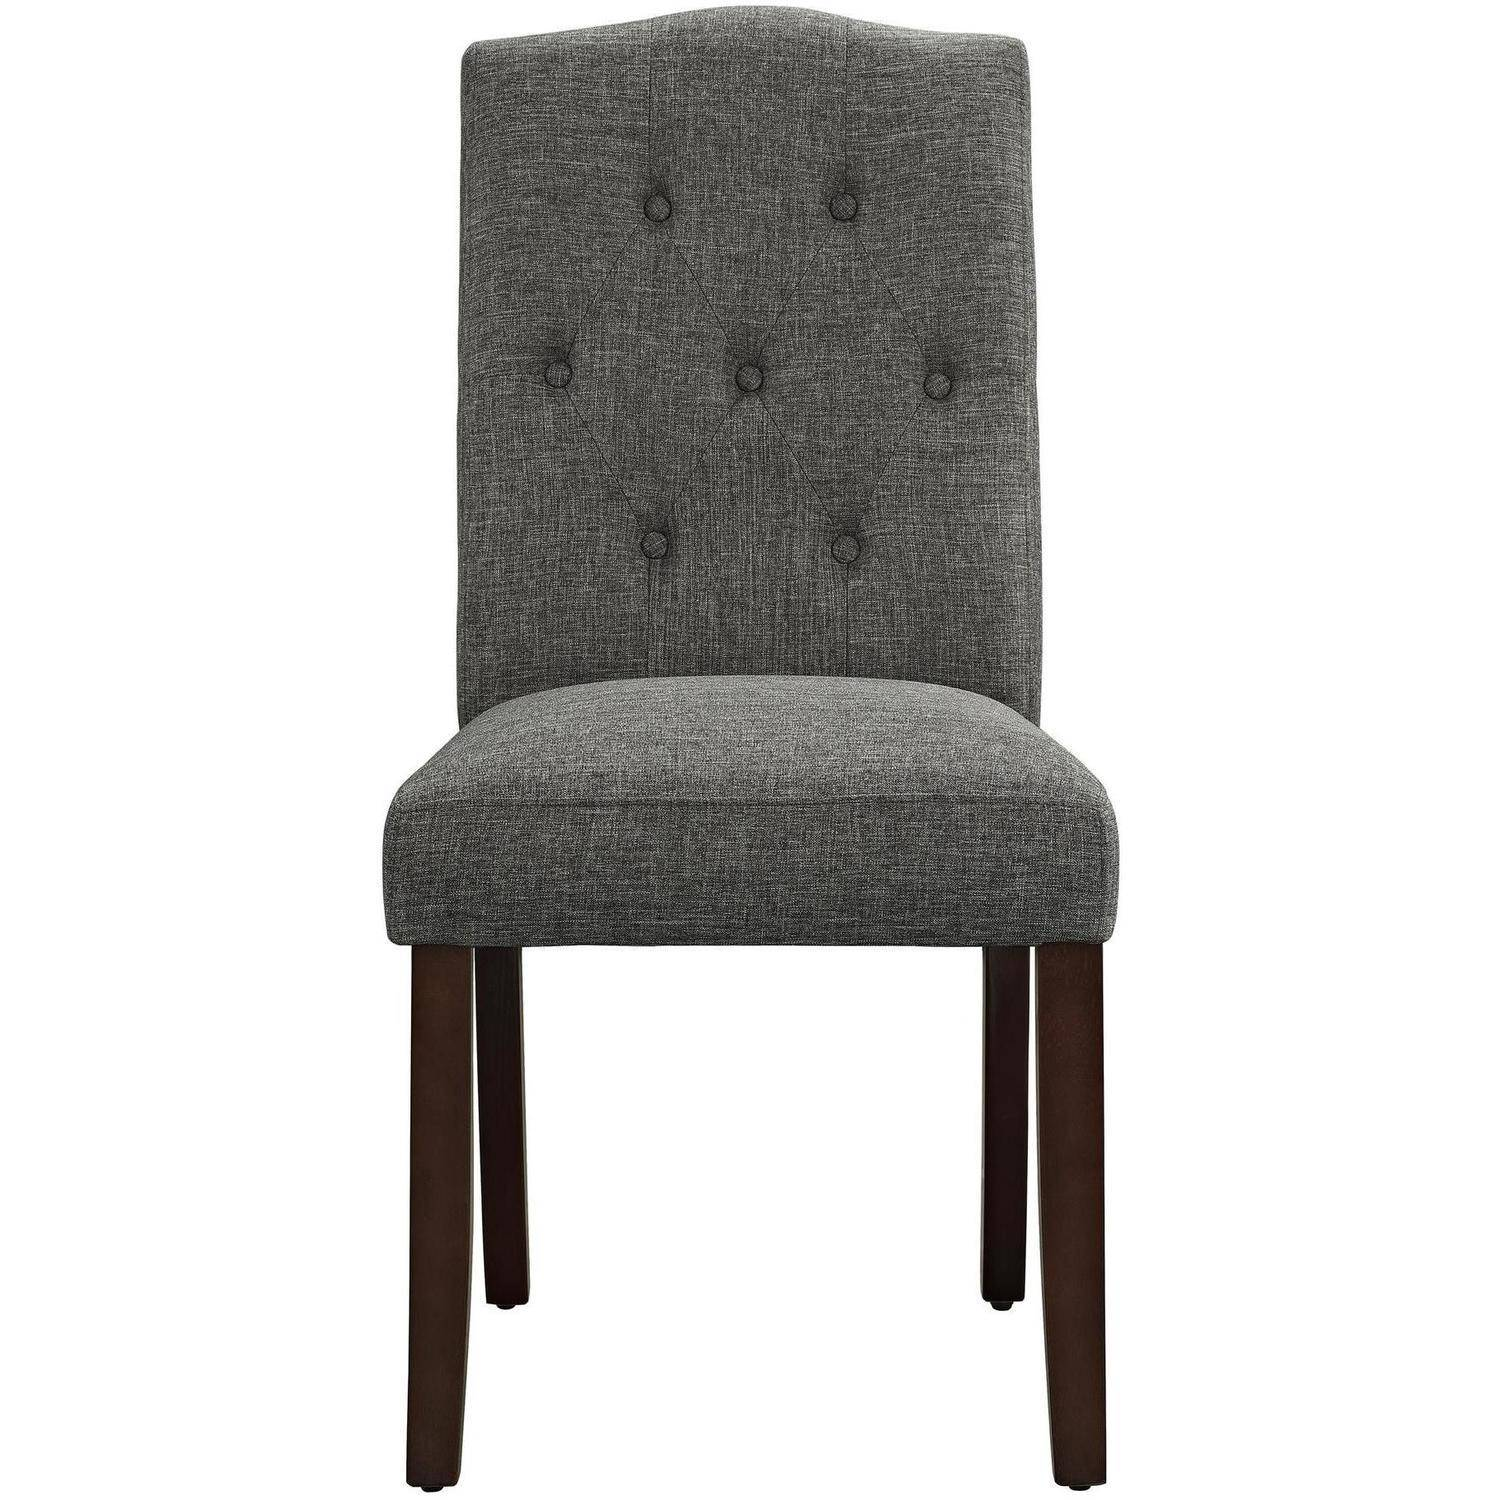 Upholstered Chairs For Dining Room Dining Room Tufted Dining Chair Upholstered Side Chairs